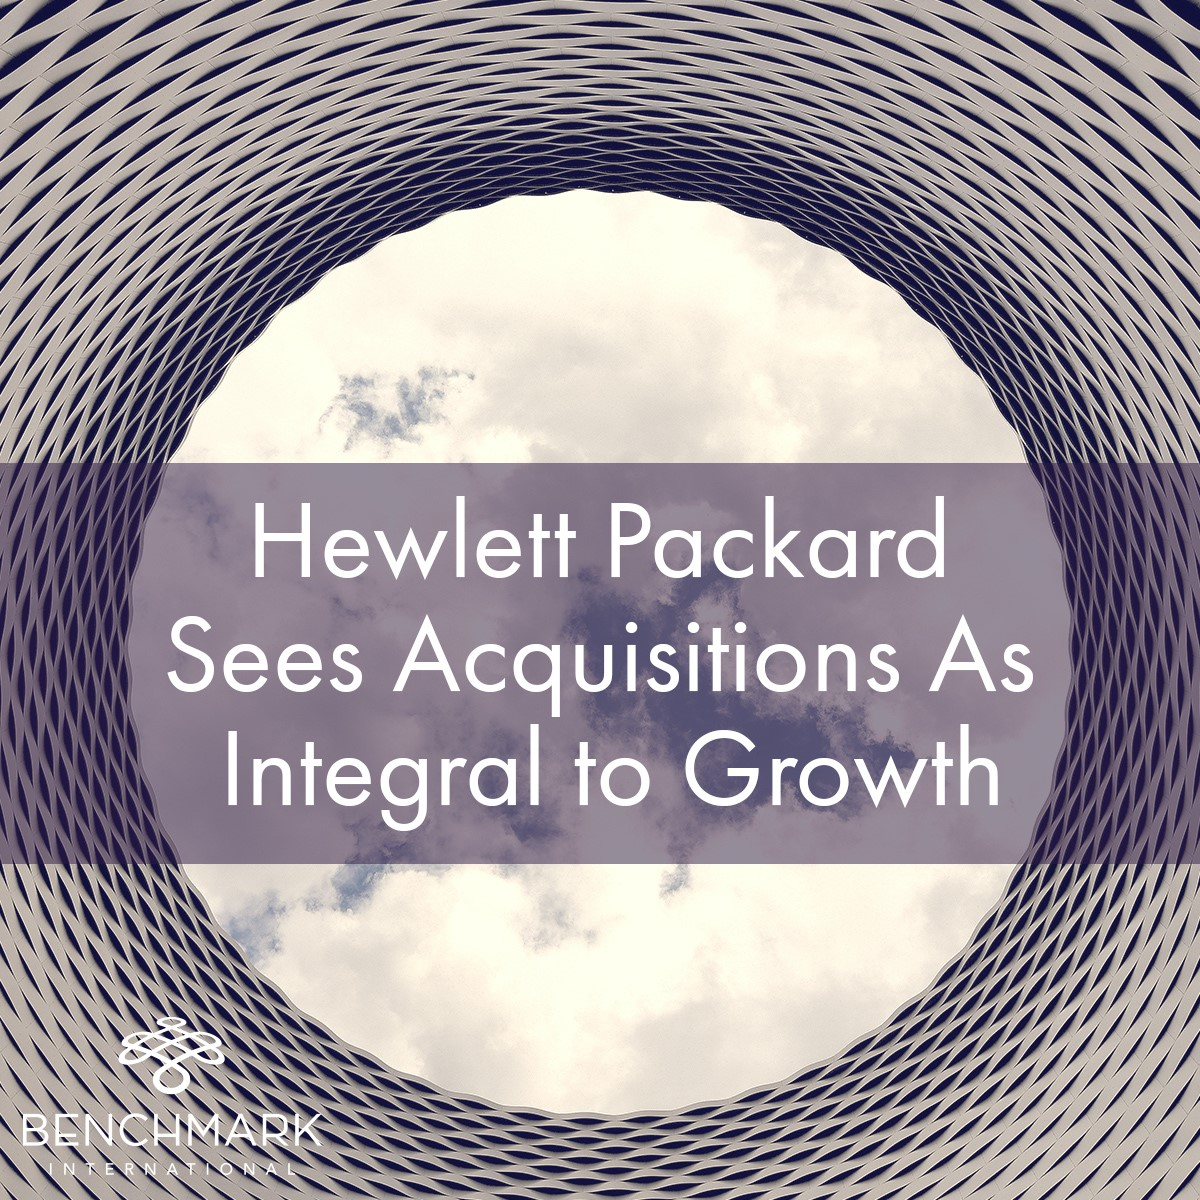 Hewlett Packard Sees Acquisitions As Integral to Growth